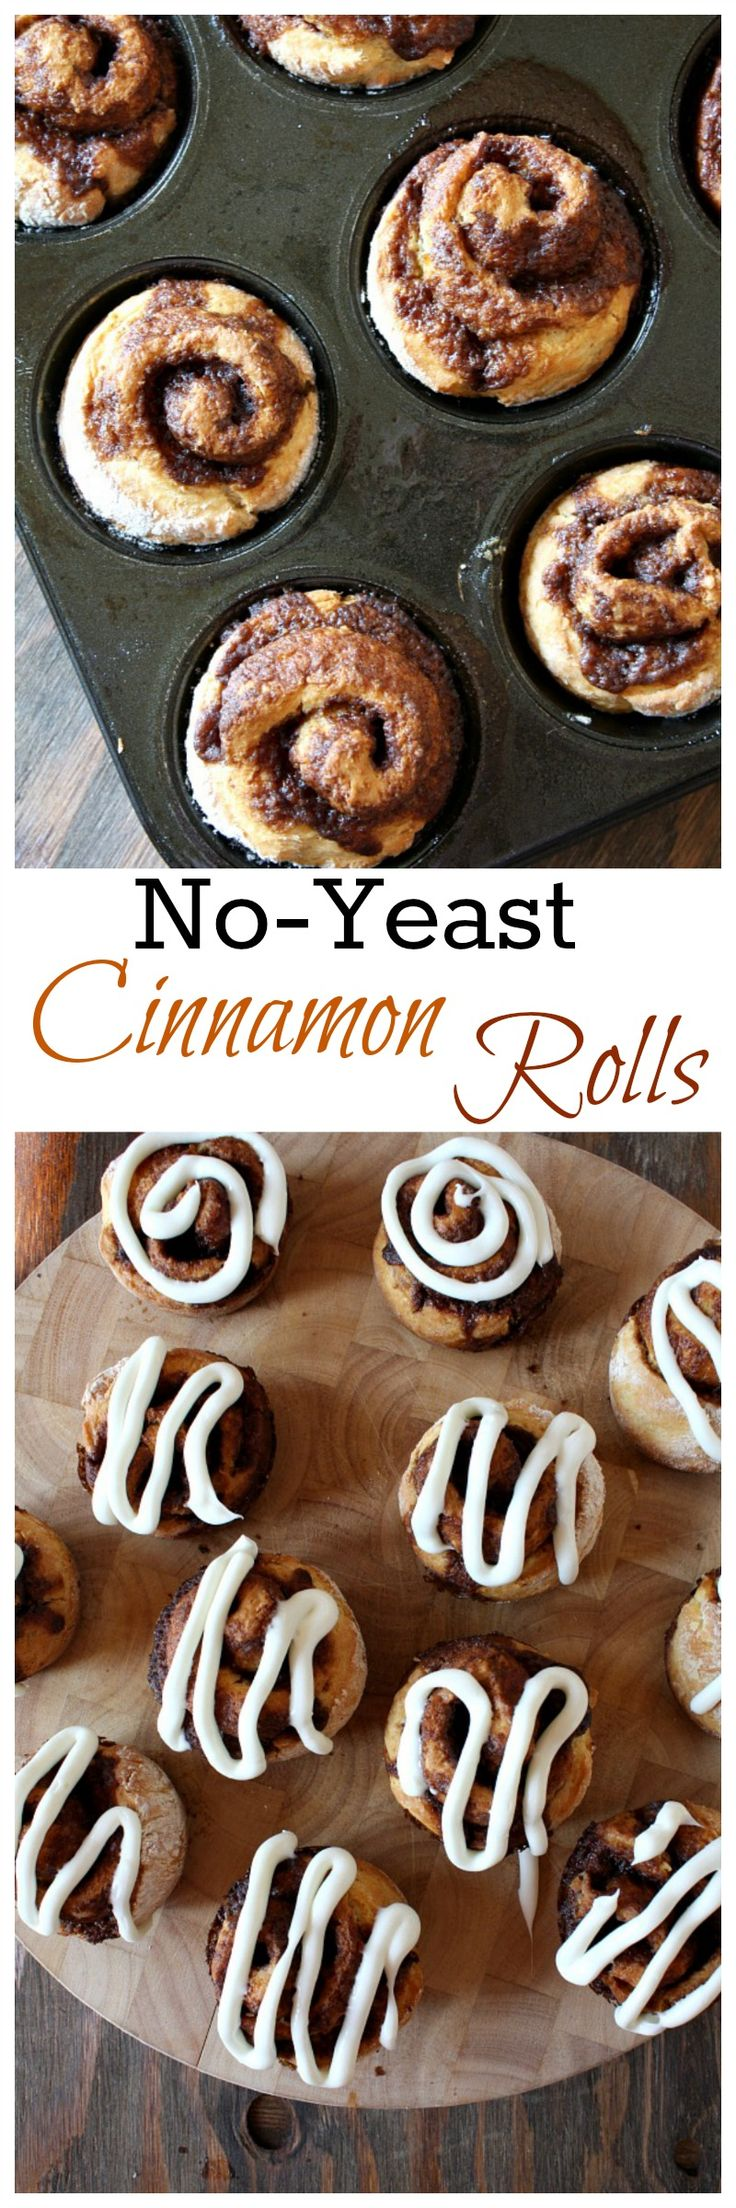 No-Yeast Cinnamon Rolls- EASY recipe!